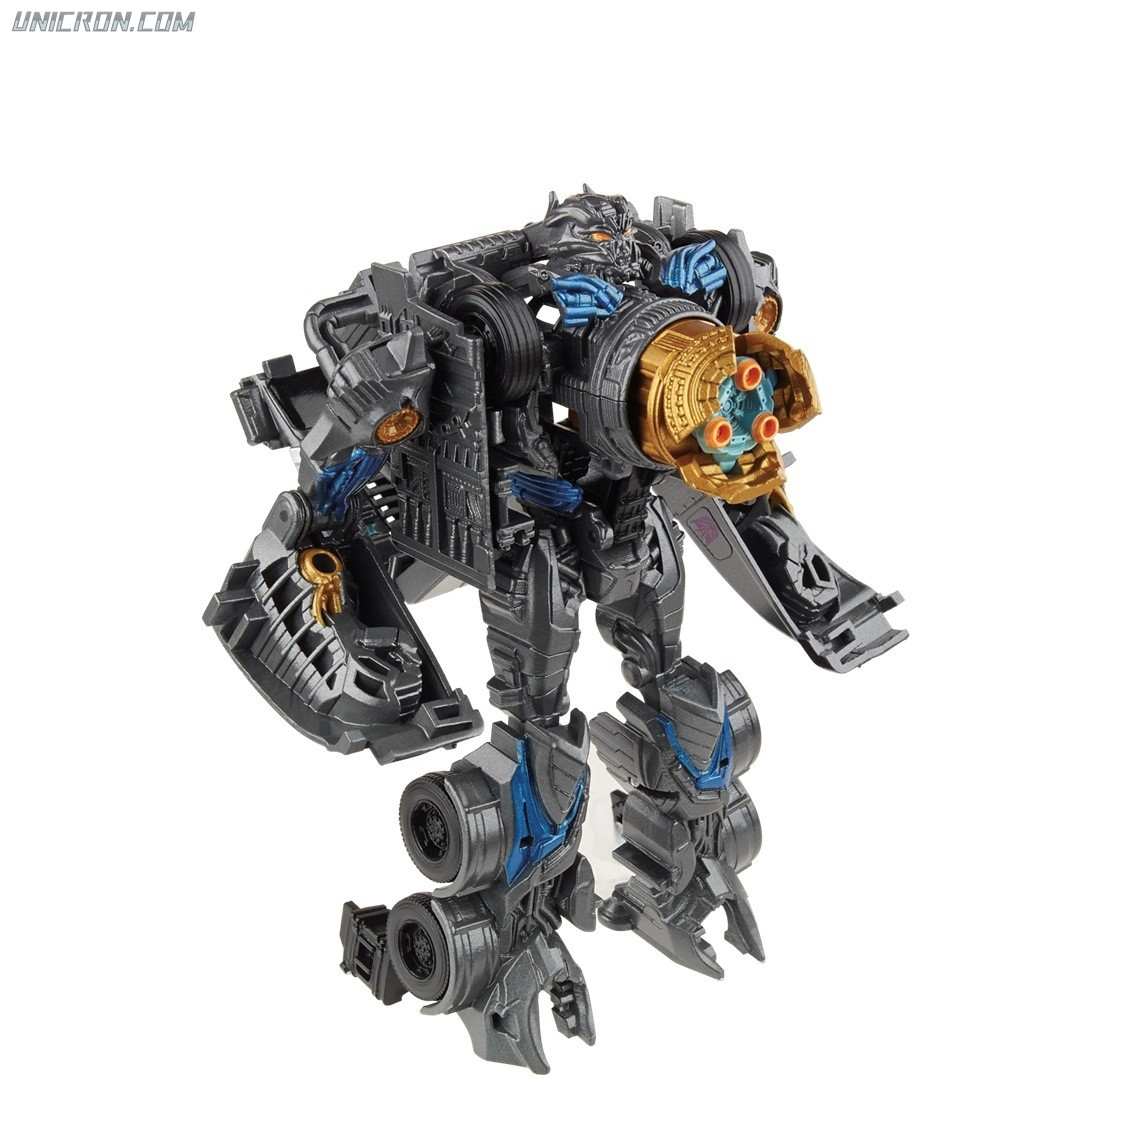 Transformers 4 Age of Extinction Galvatron - AoE Power Battlers toy